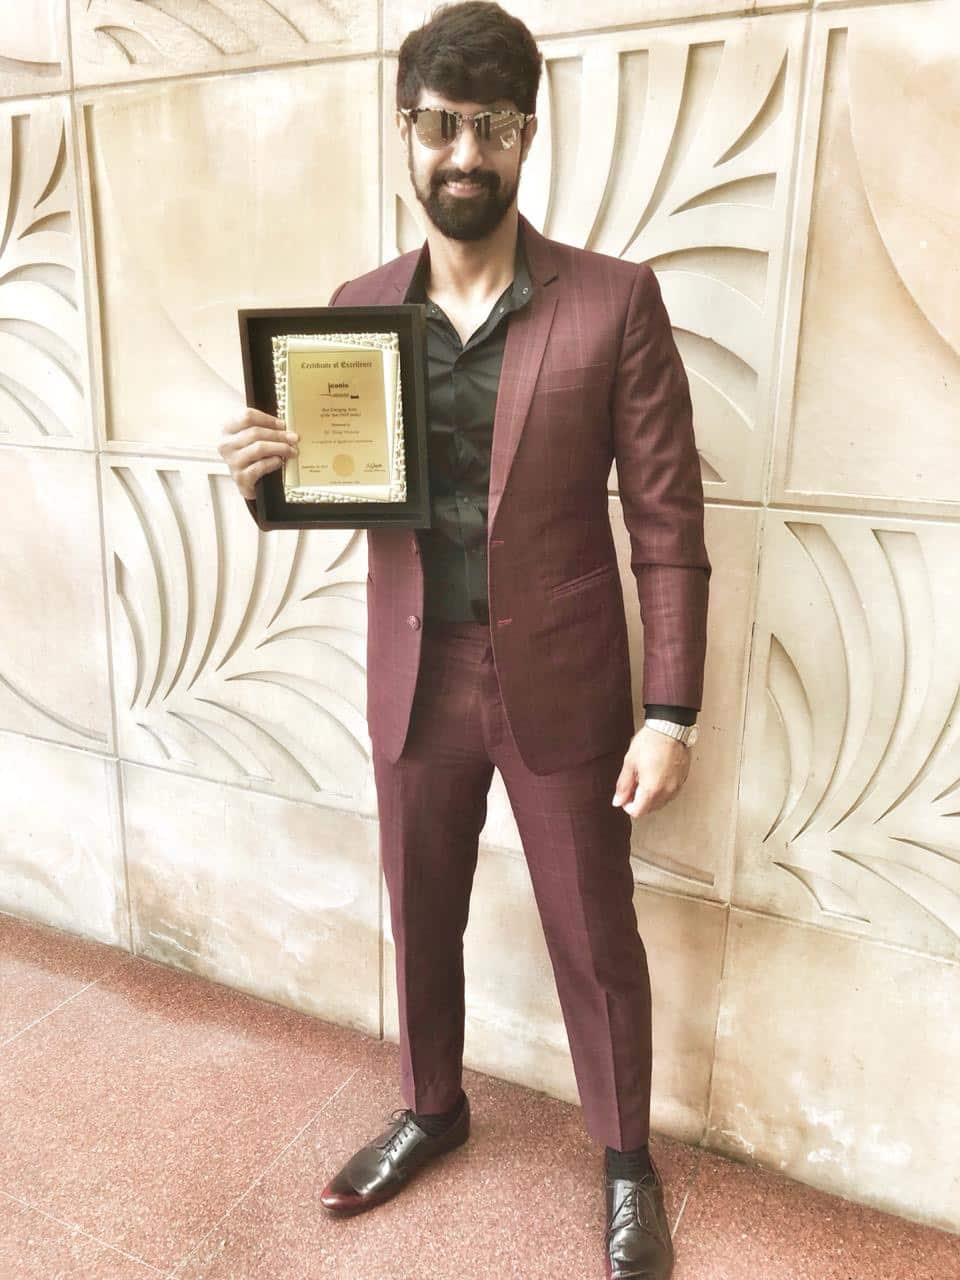 Tanuj Virwani Wins Best Emerging Actor At Iconic Achievers Awards For Inside Edge, Anupam Kher And Ranveer Shorey Win Too